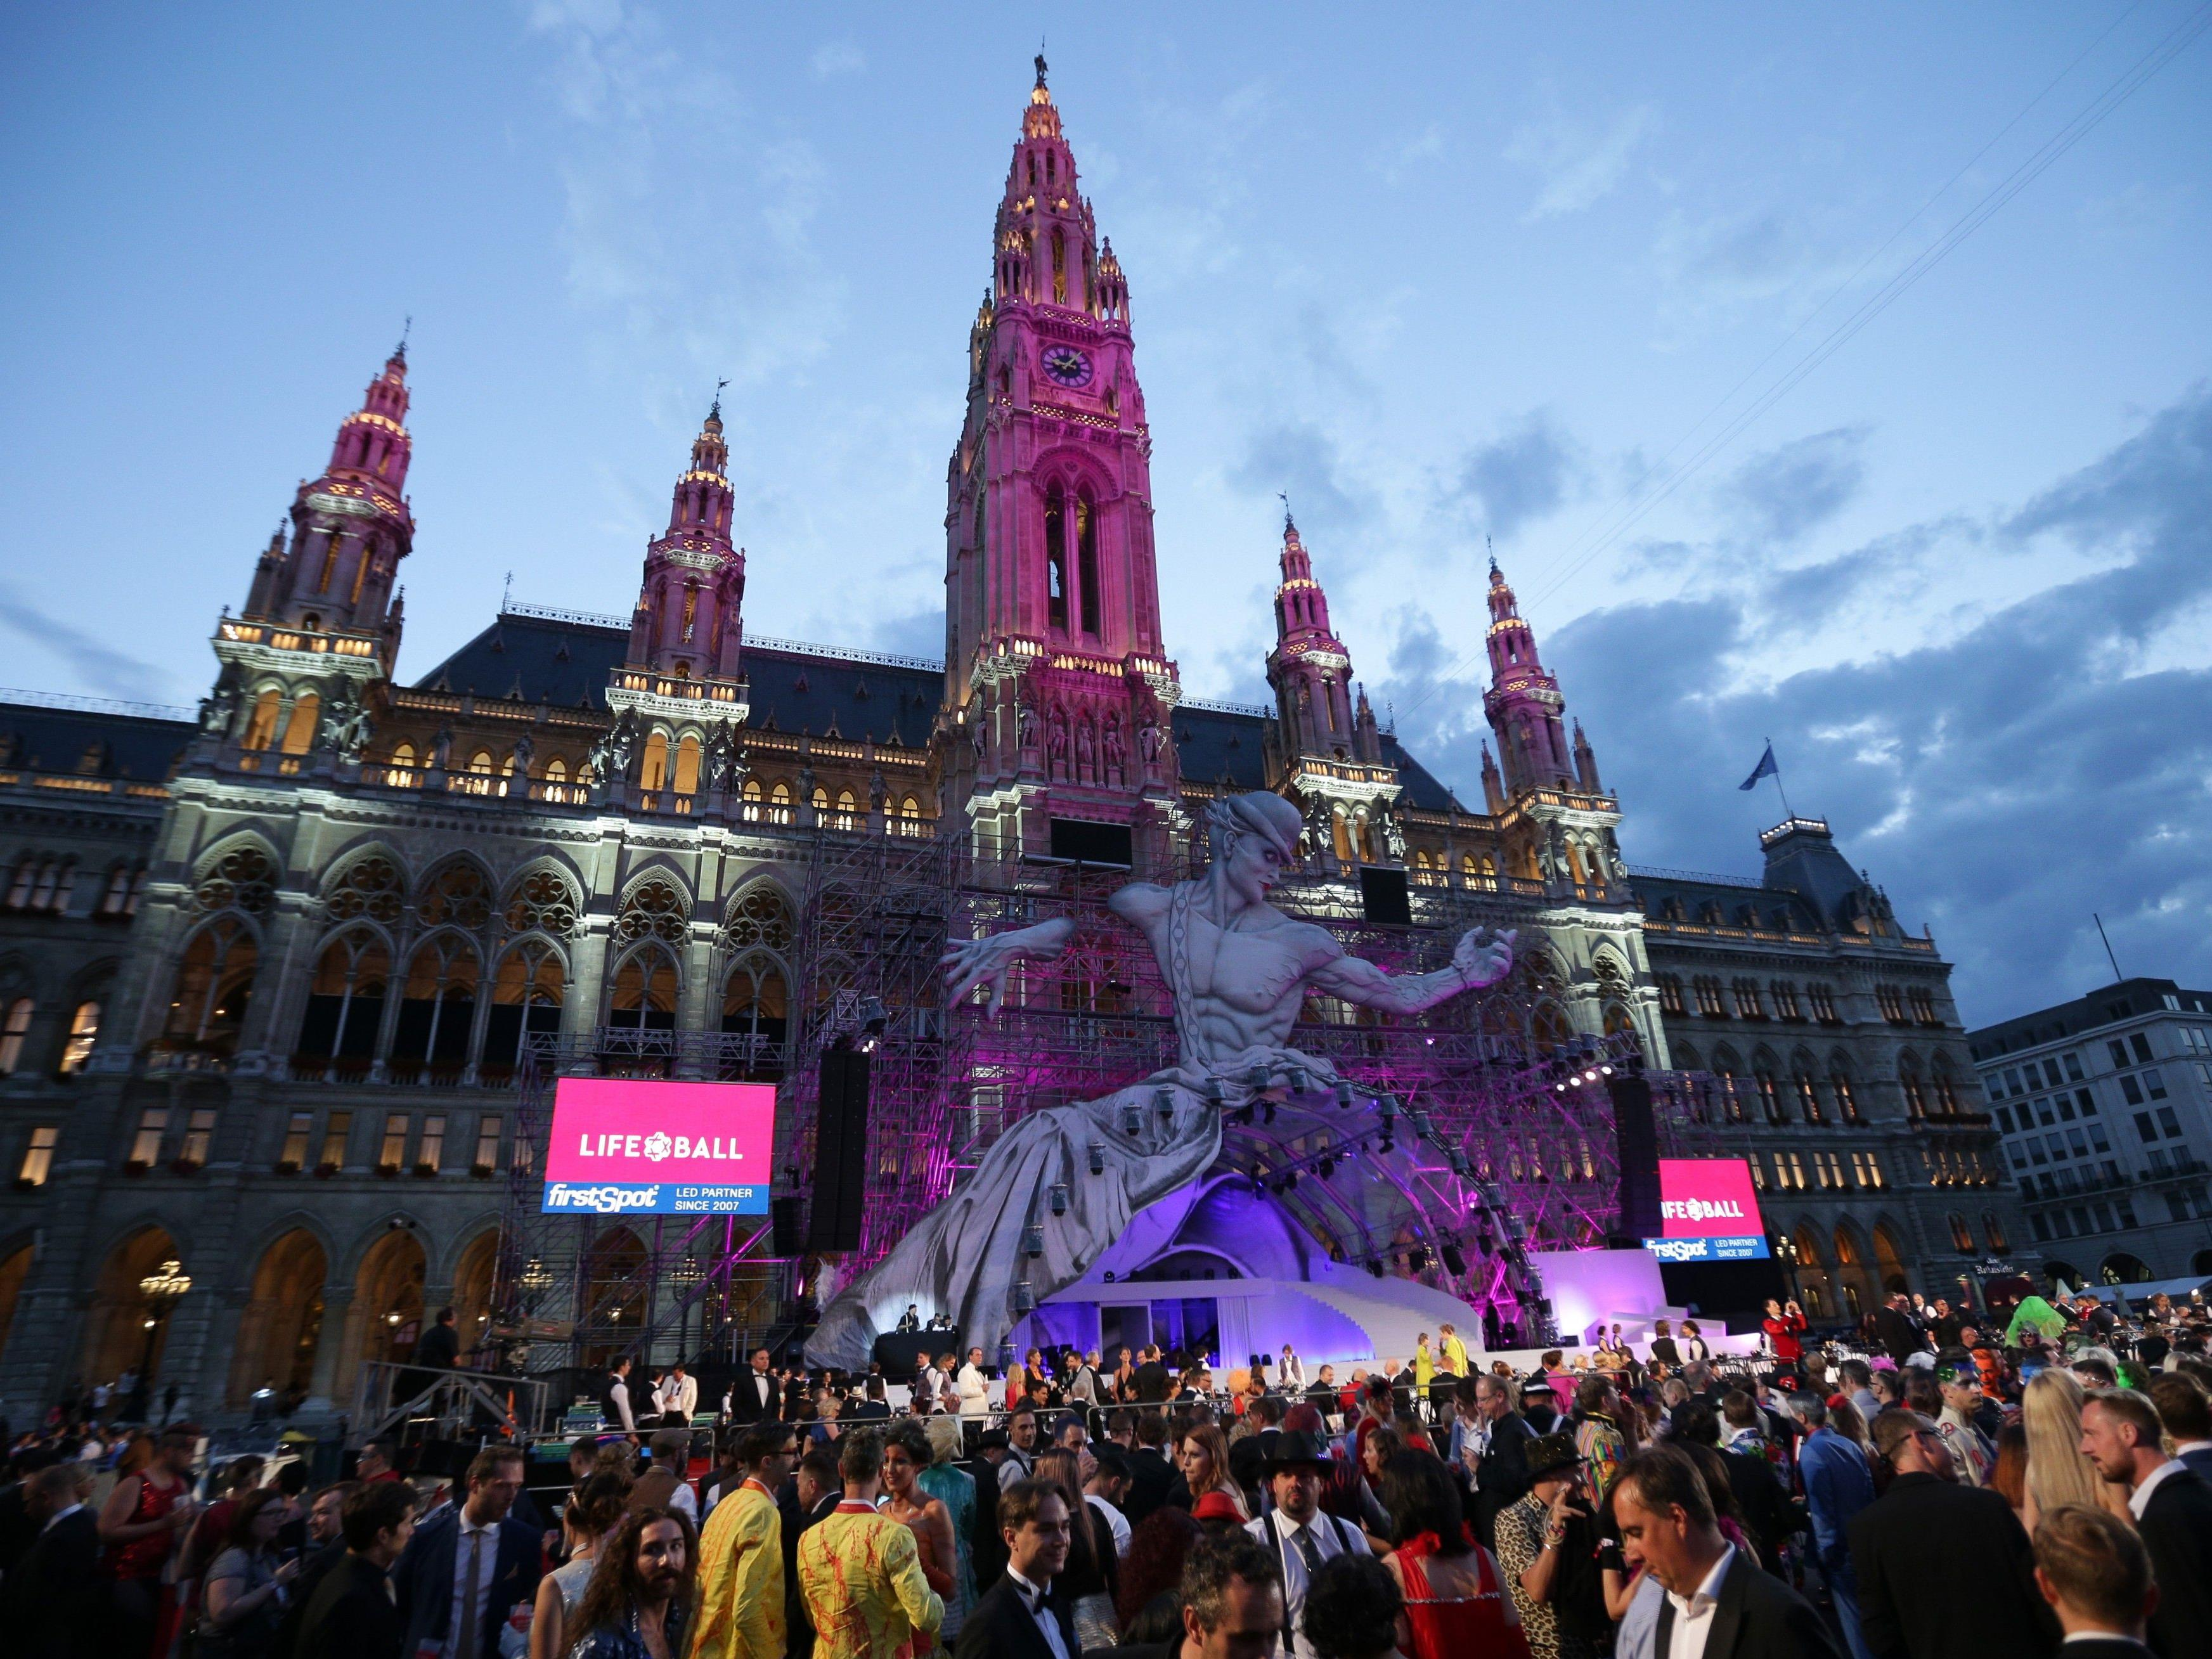 The best collection of photos of Vienna's Life Ball 2017.